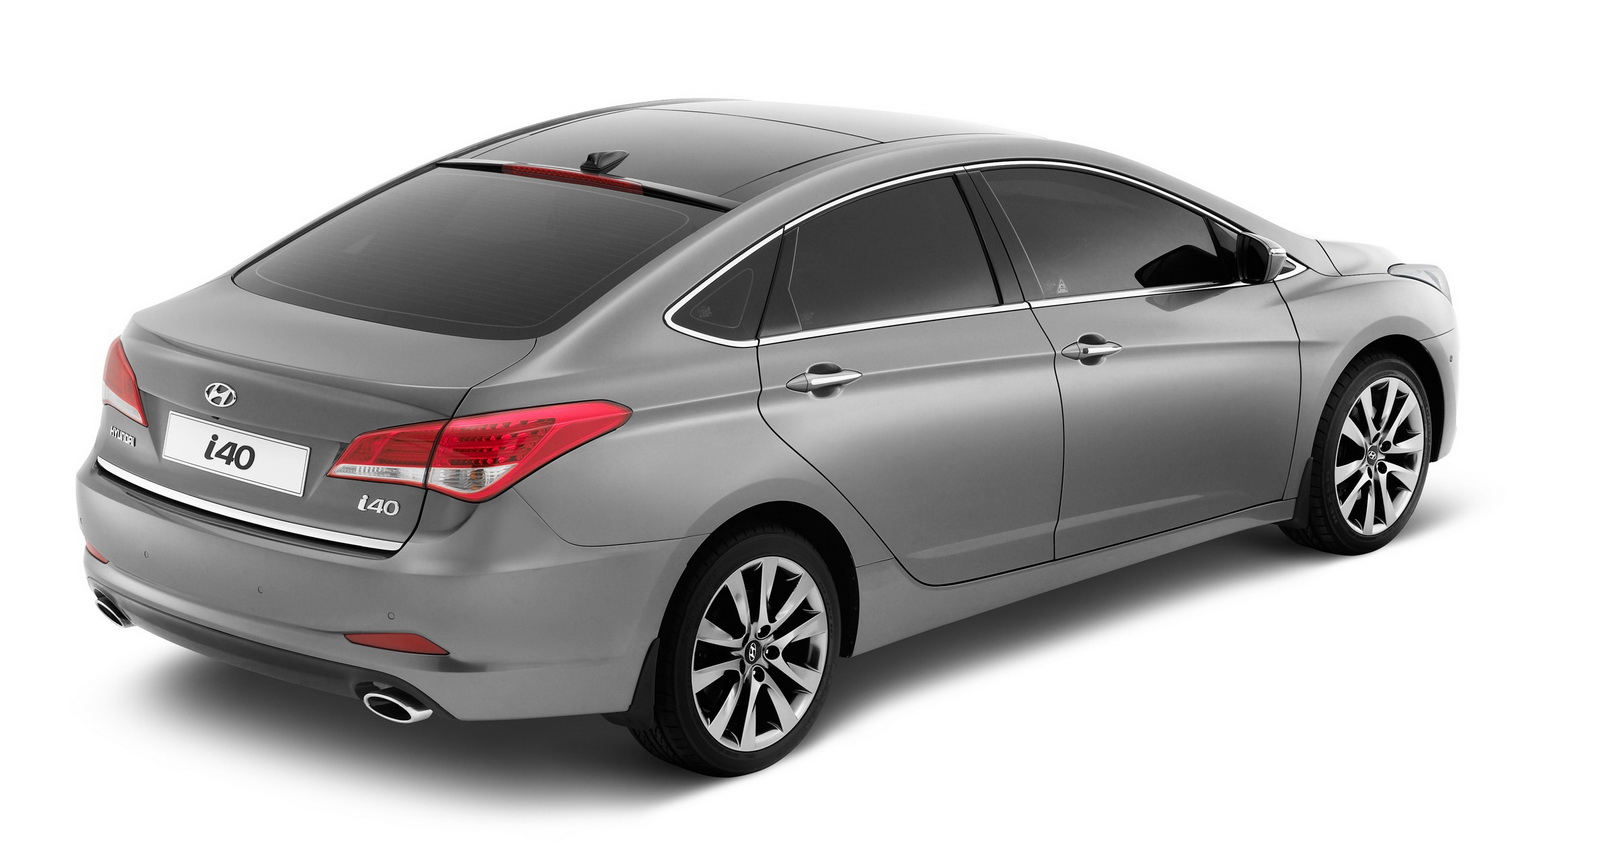 HYUNDAI I40 AT